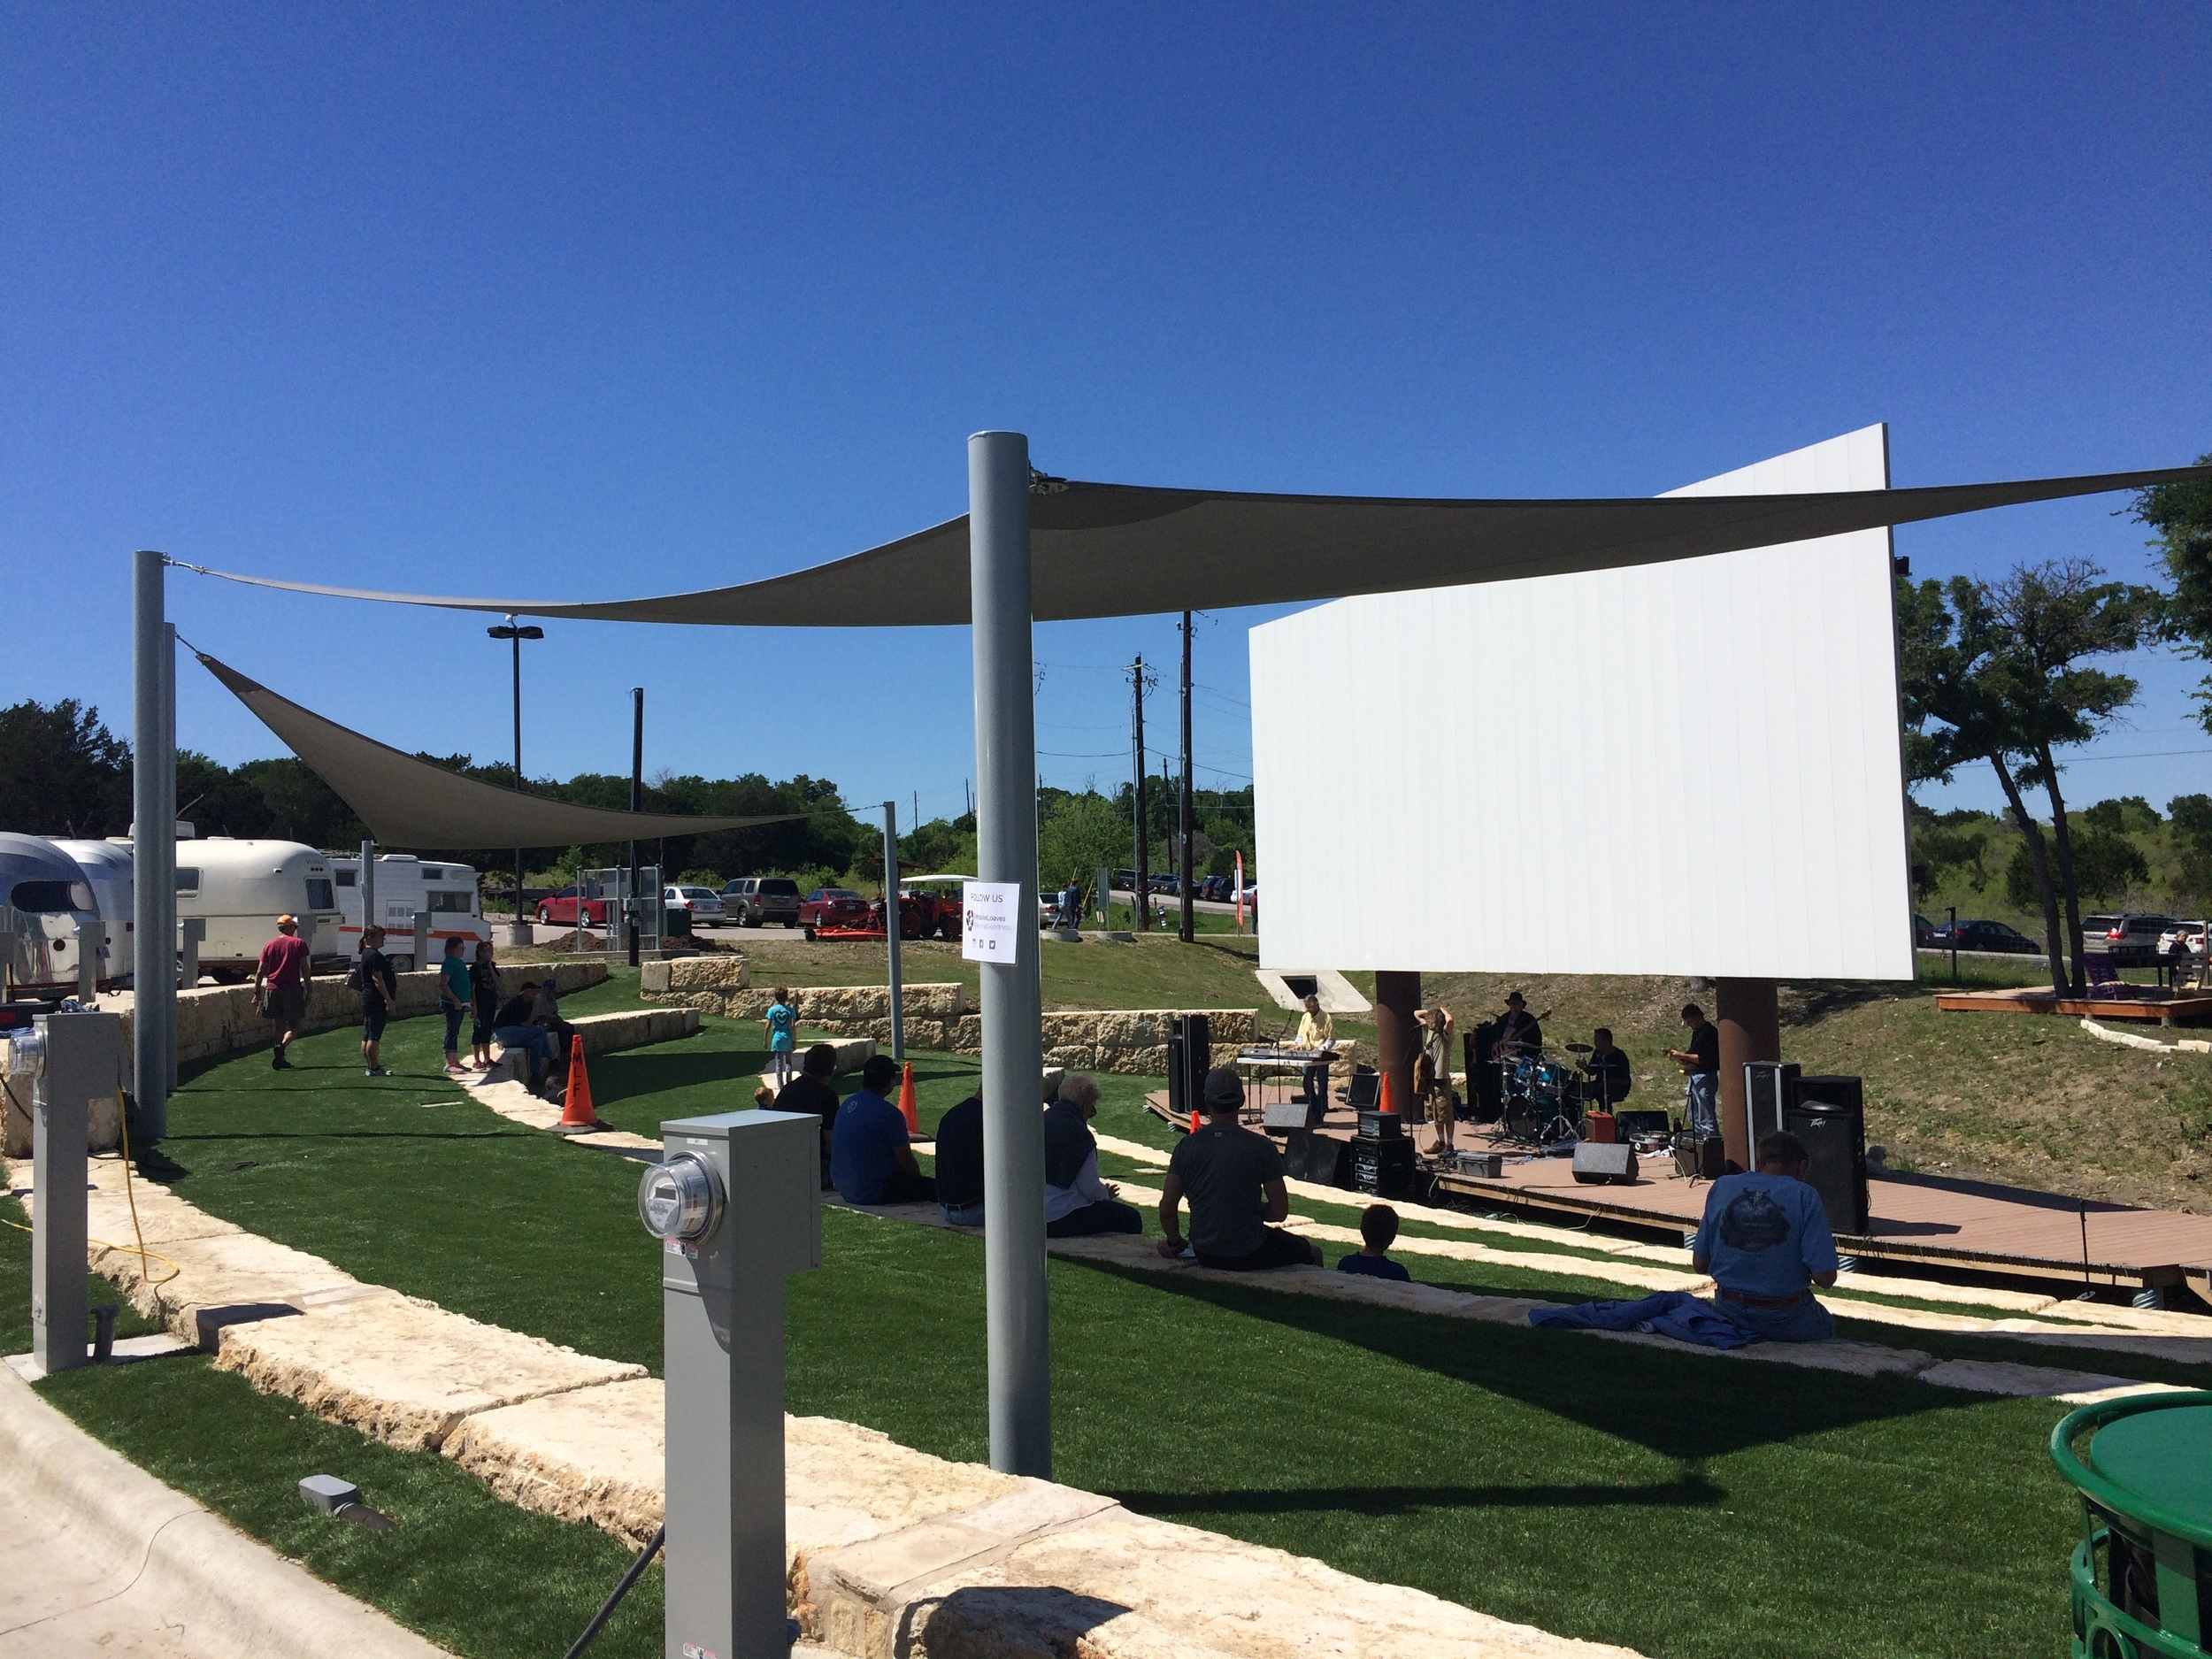 A community amphitheater provides a place to gather for live music and movies.